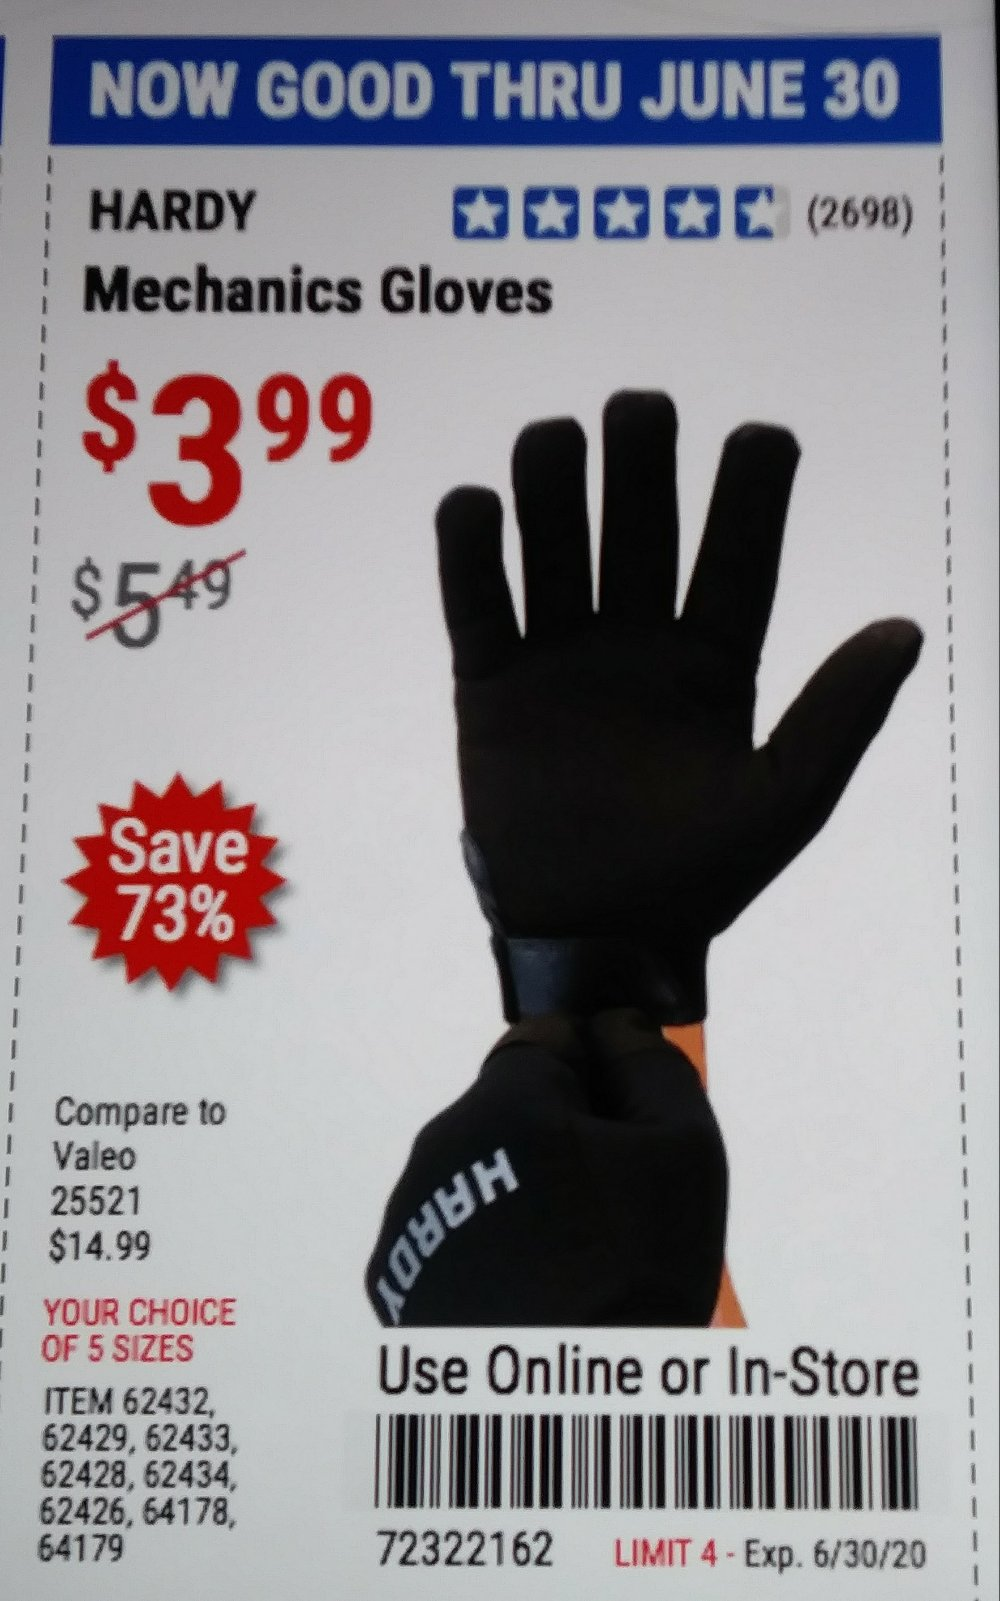 Harbor Freight Coupon, HF Coupons - Hardy Mechanic s Gloves